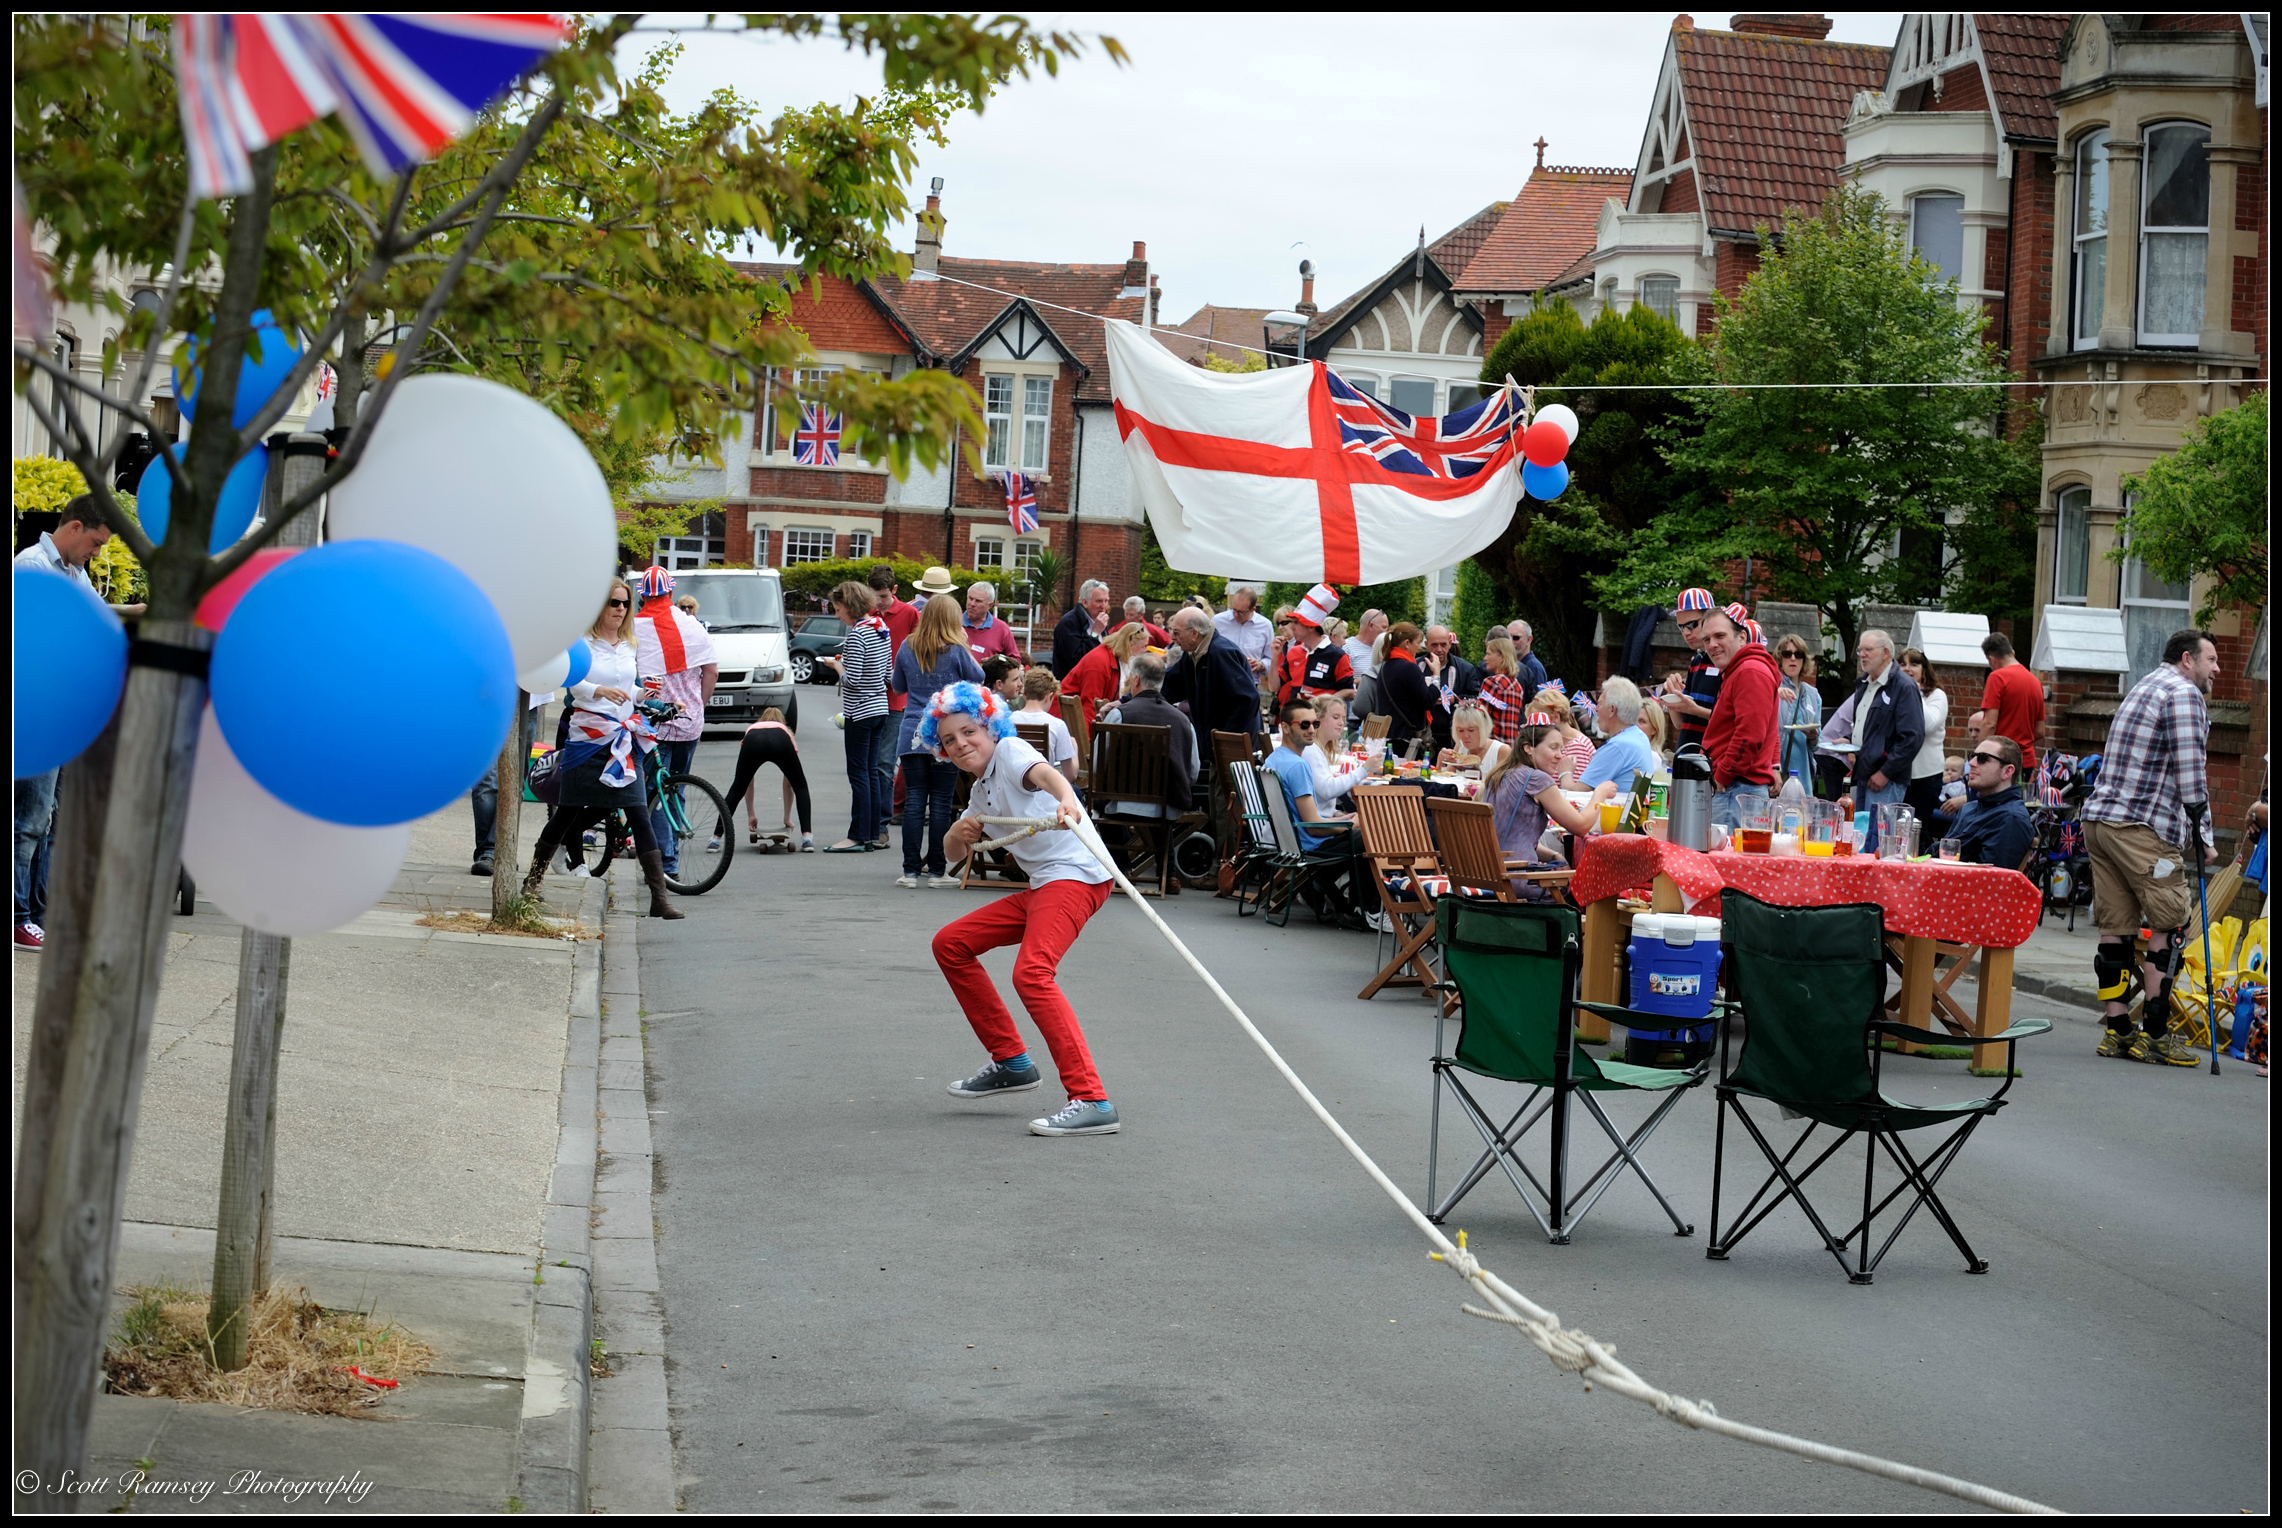 As residents enjoy the street party a boy wearing a colourful wig pulls on a large rope during a tug of war match. The community gathered together and organised aVE Day 70th anniversary street party in their road, Nettlecombe Avenue, Southsea, Portsmouth, UK. © Scott Ramsey Photography.